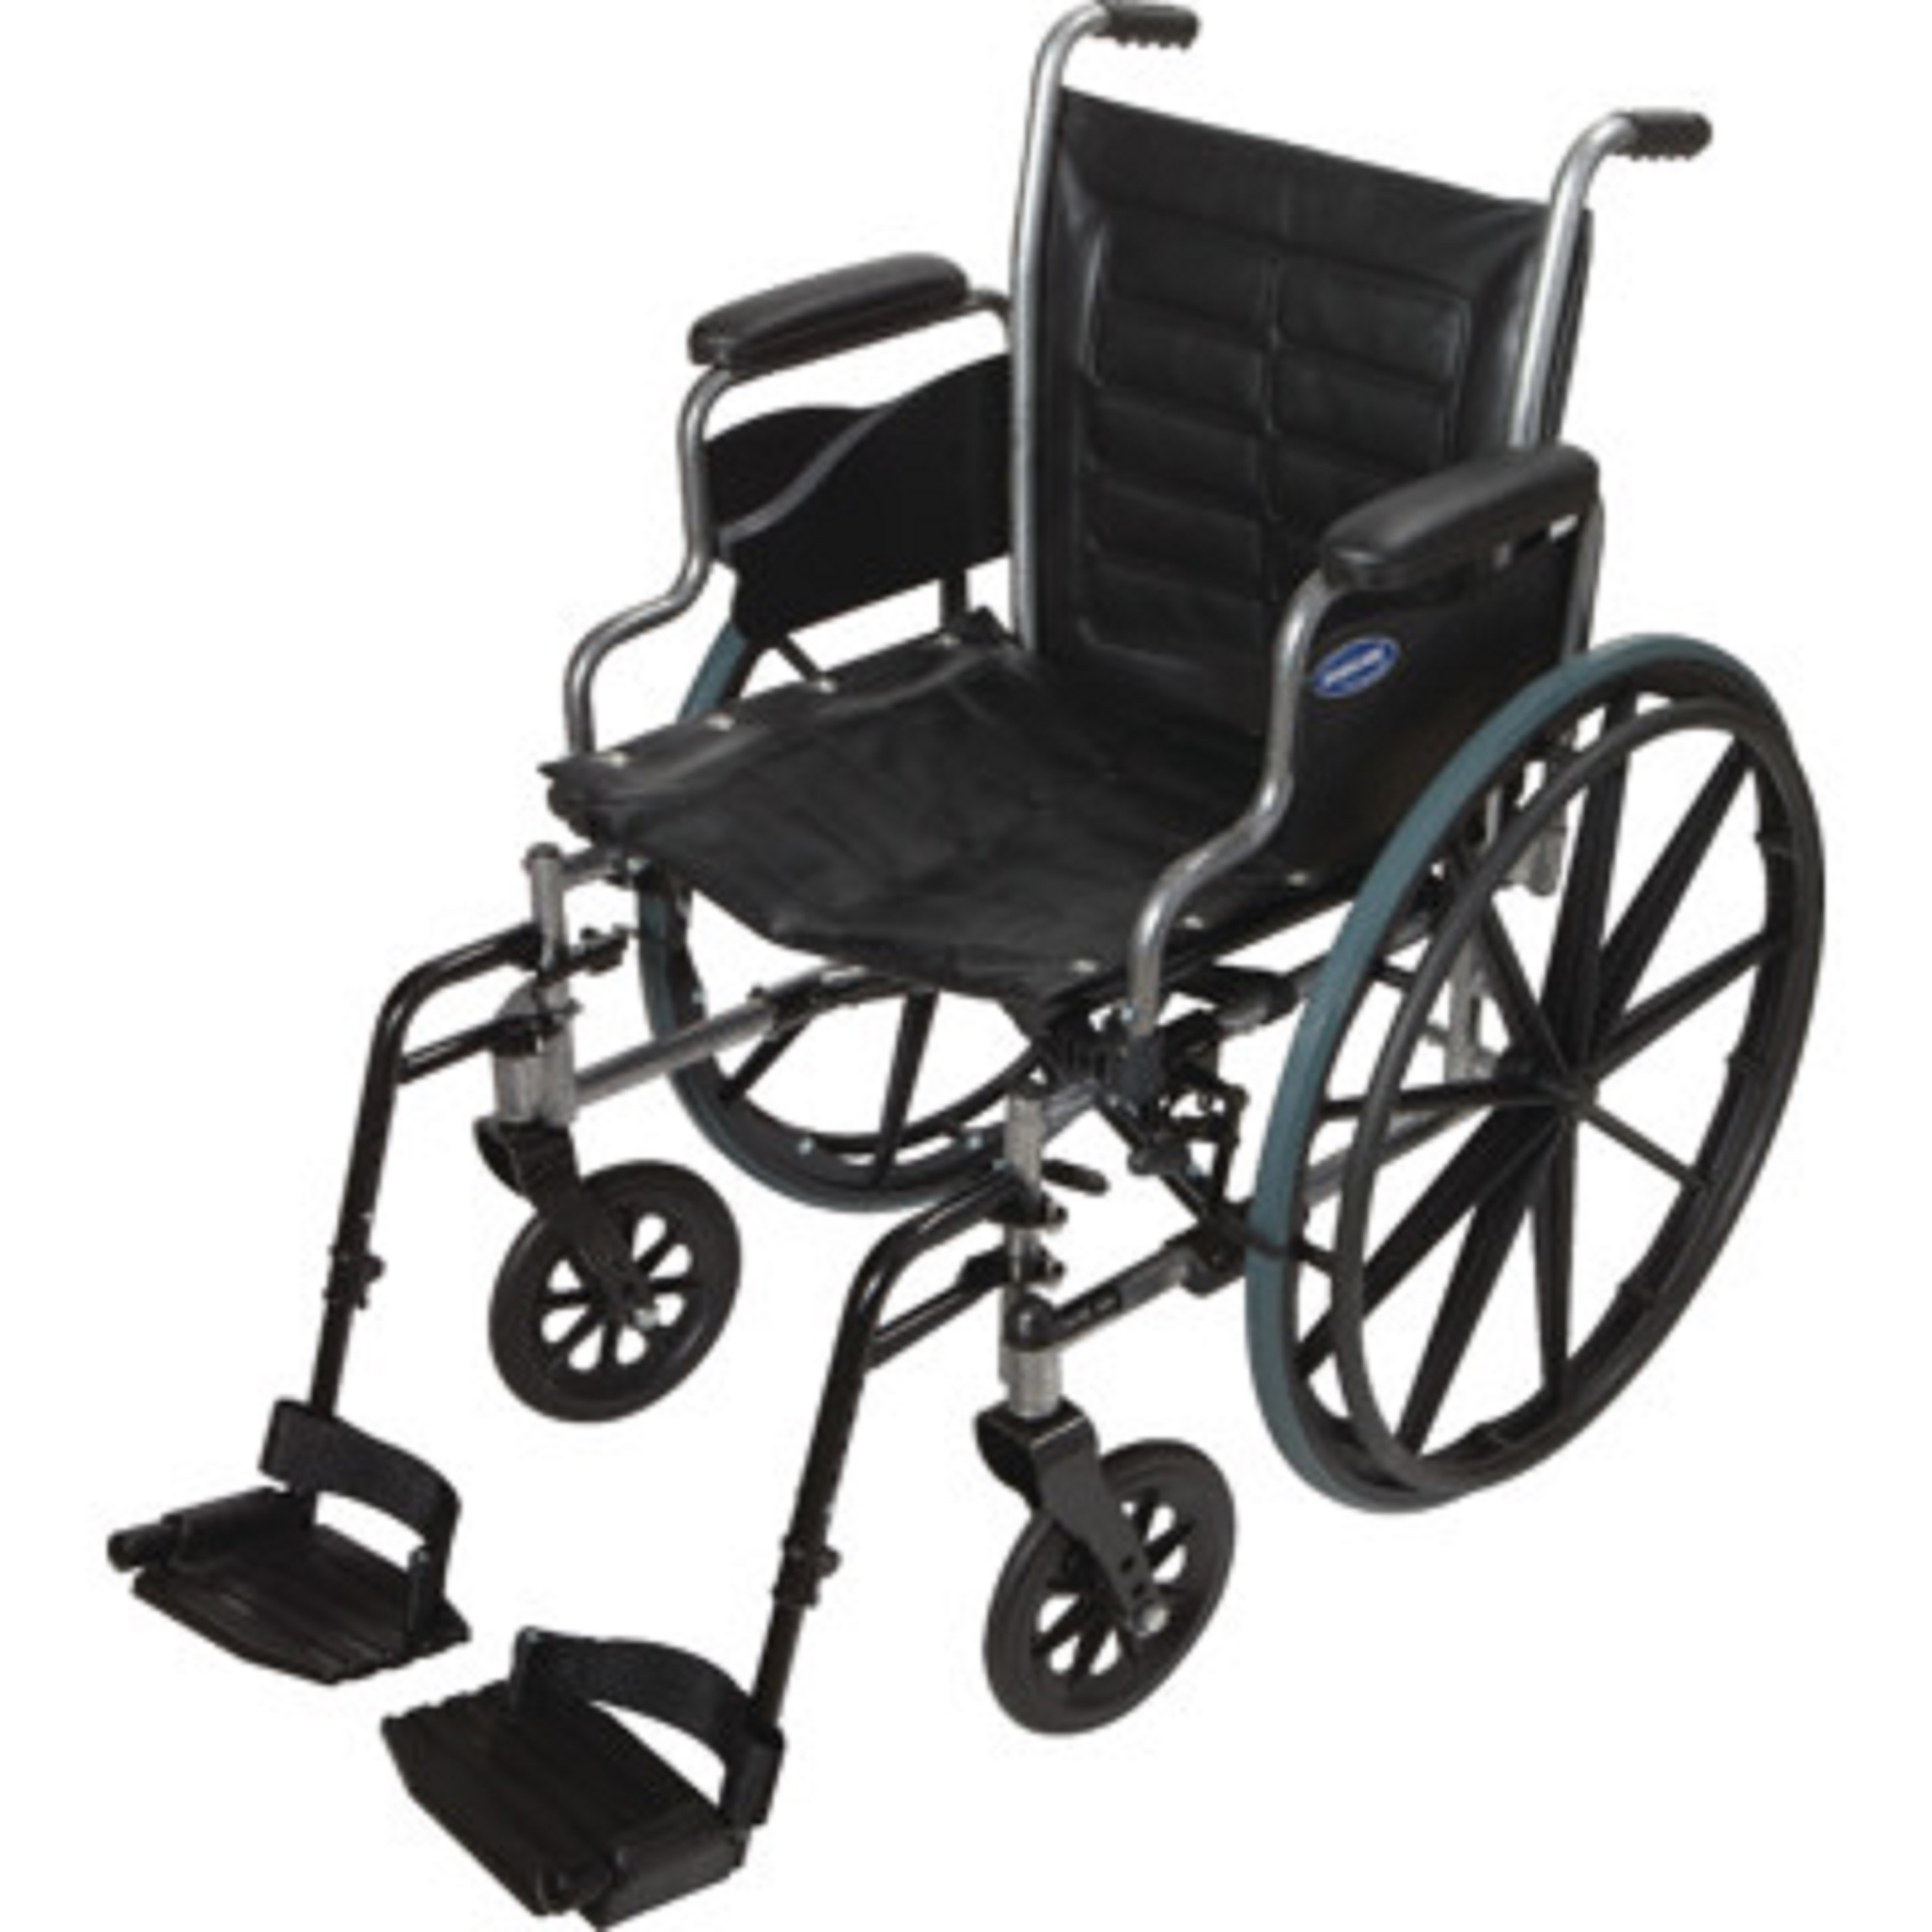 """Invacare - Tracer IV - Manual Wheelchair - Desk-Length Armrest with Swing Away Footrest - 22"""" x 18"""" Seat - Silver Vein"""